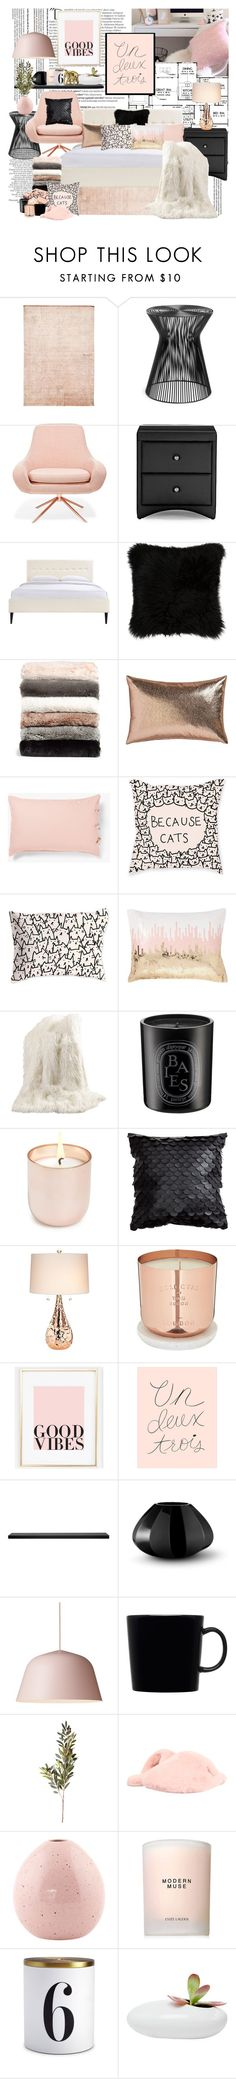 """good vibes bedroom"" by missoumiss ❤ liked on Polyvore featuring interior, interiors, interior design, home, home decor, interior decorating, Balmain, Baxton Studio, Steel 